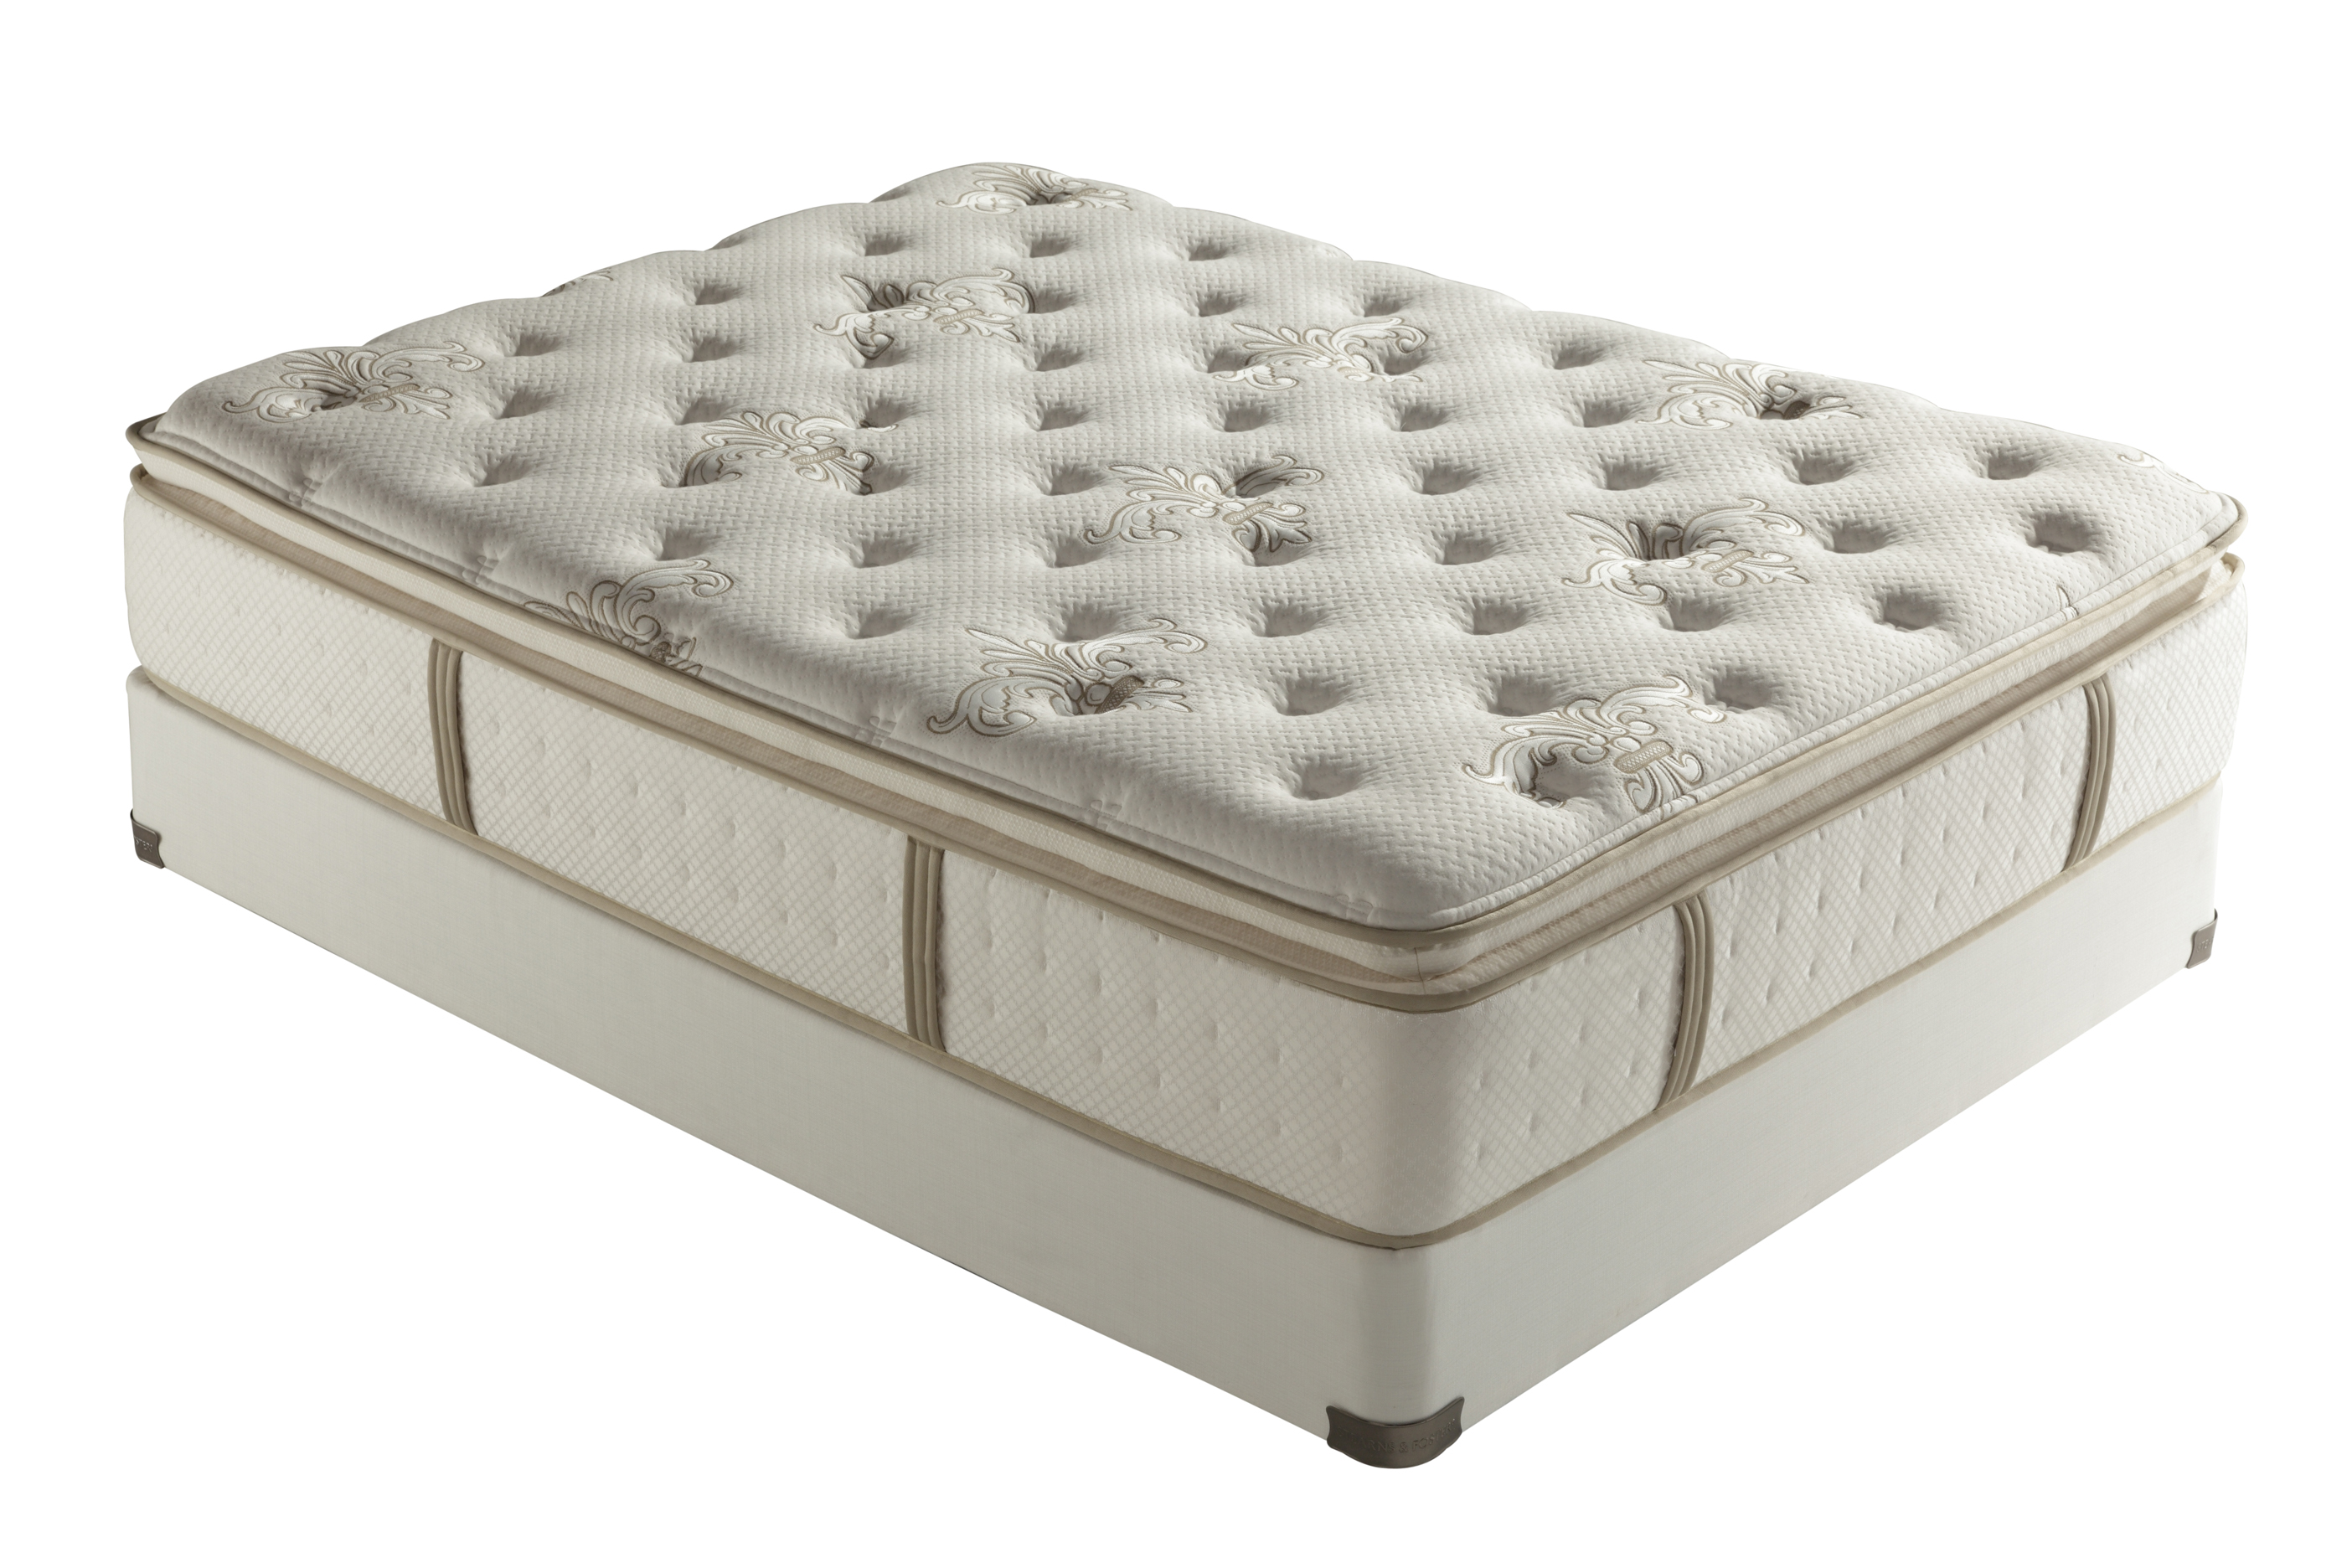 Stearns foster susie luxury firm euro pillow top mattress for Which mattress company is the best